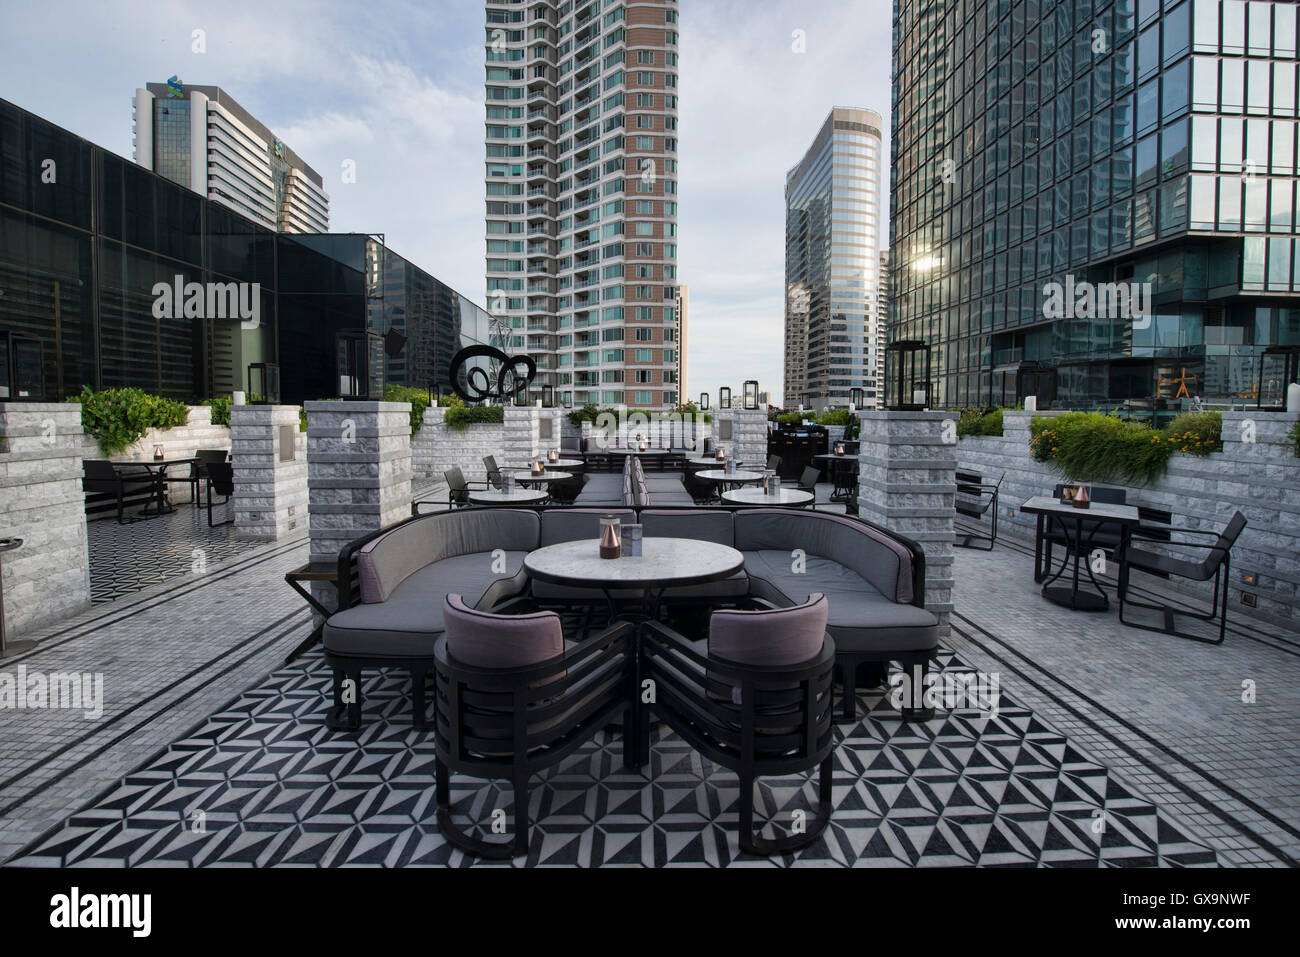 Rooftop bar at the Vogue Lounge, Bangkok, Thailand - Stock Image